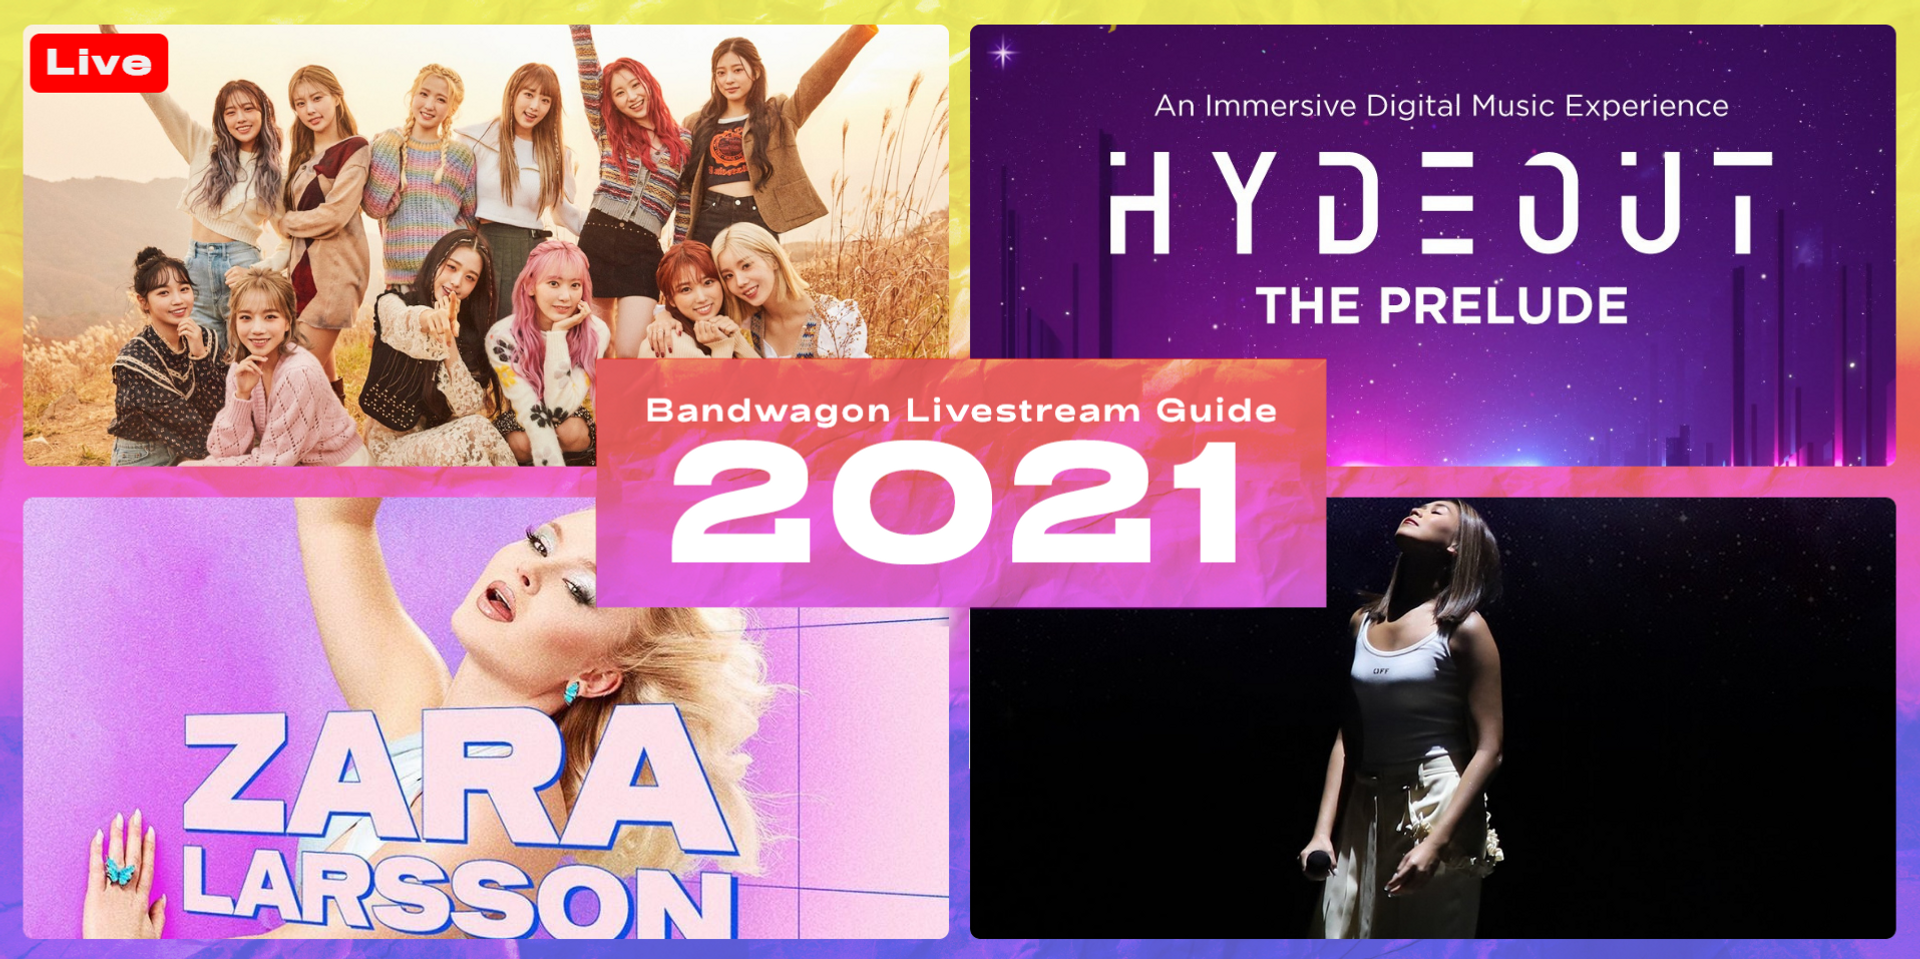 Online concerts and festivals to stream in 2021 - Hydeout, Zara Larsson, IZ*ONE, Sarah Geronimo, and more